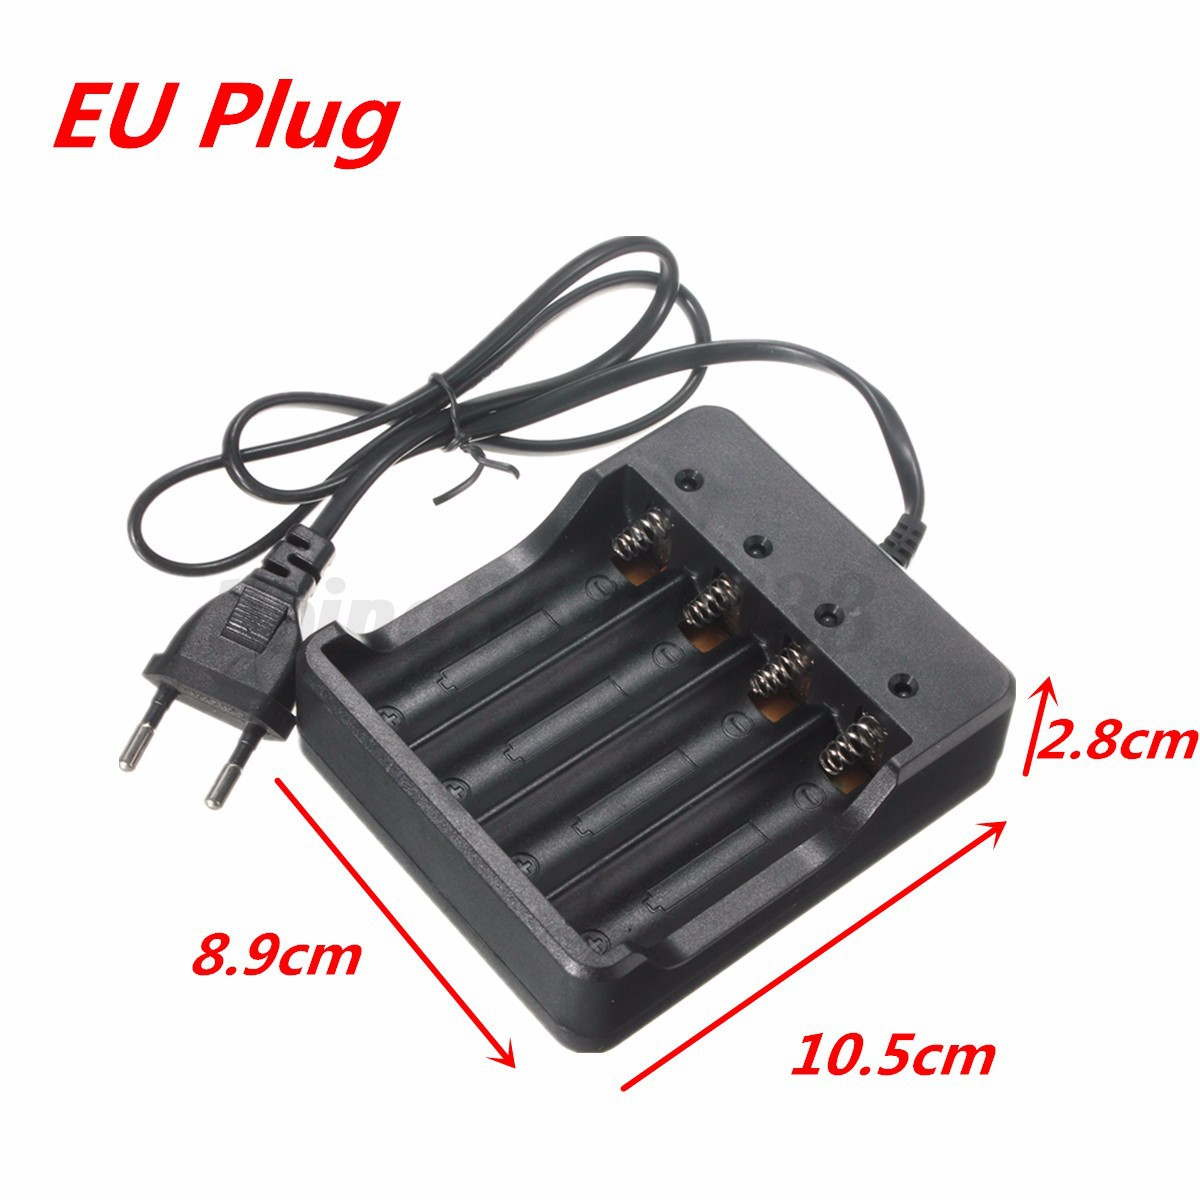 eu chargeur charger pr accu batterie battery pile 26650 18650 li ion voyage ebay. Black Bedroom Furniture Sets. Home Design Ideas